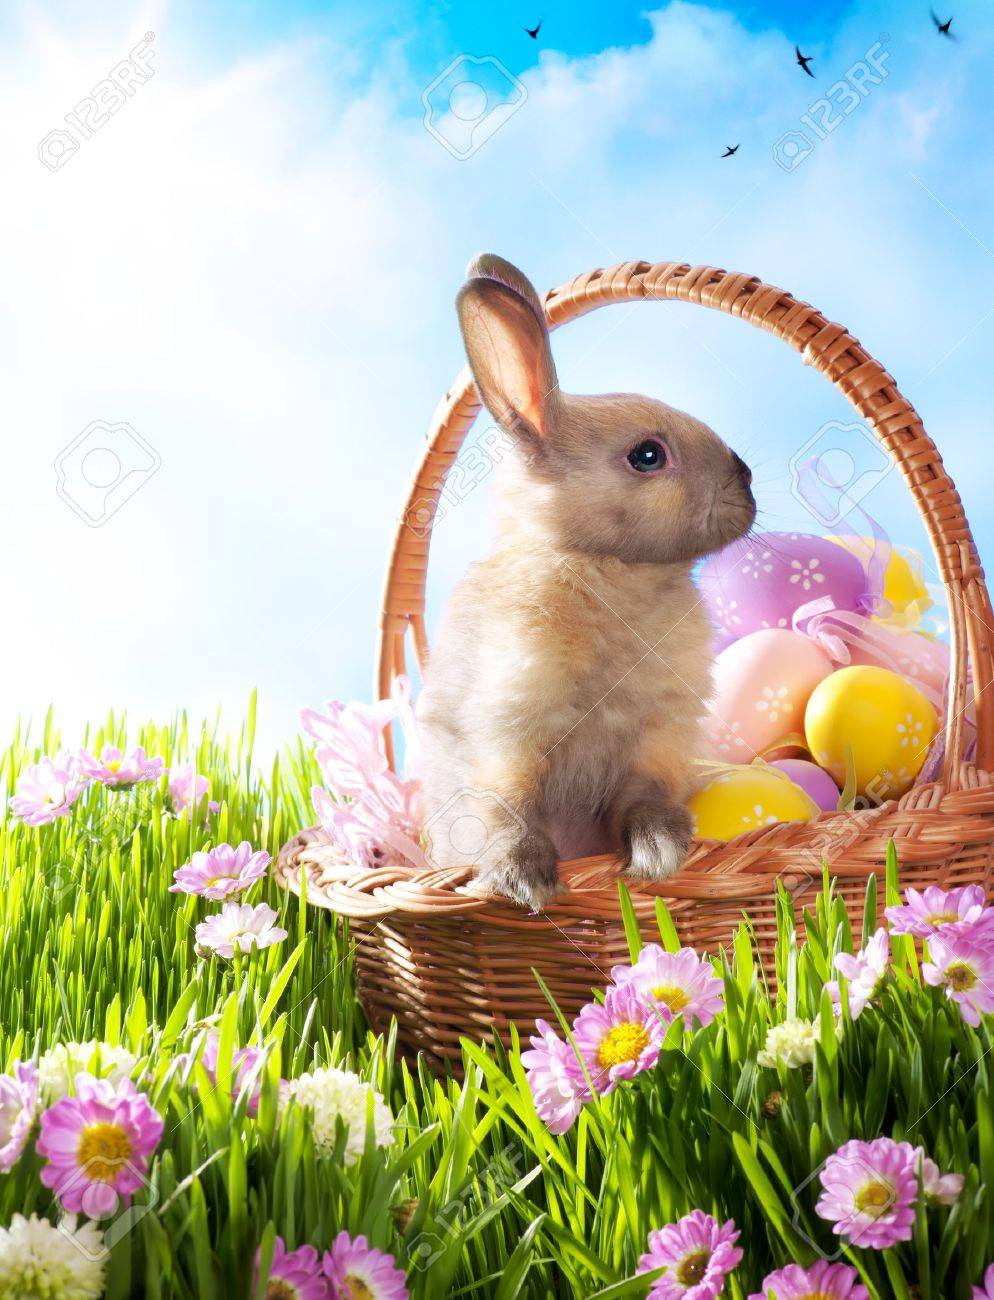 Easter Basket With Decorated Eggs And The Easter Bunny Stock Photo ... for Easter Eggs In A Basket With A Bunny  579cpg